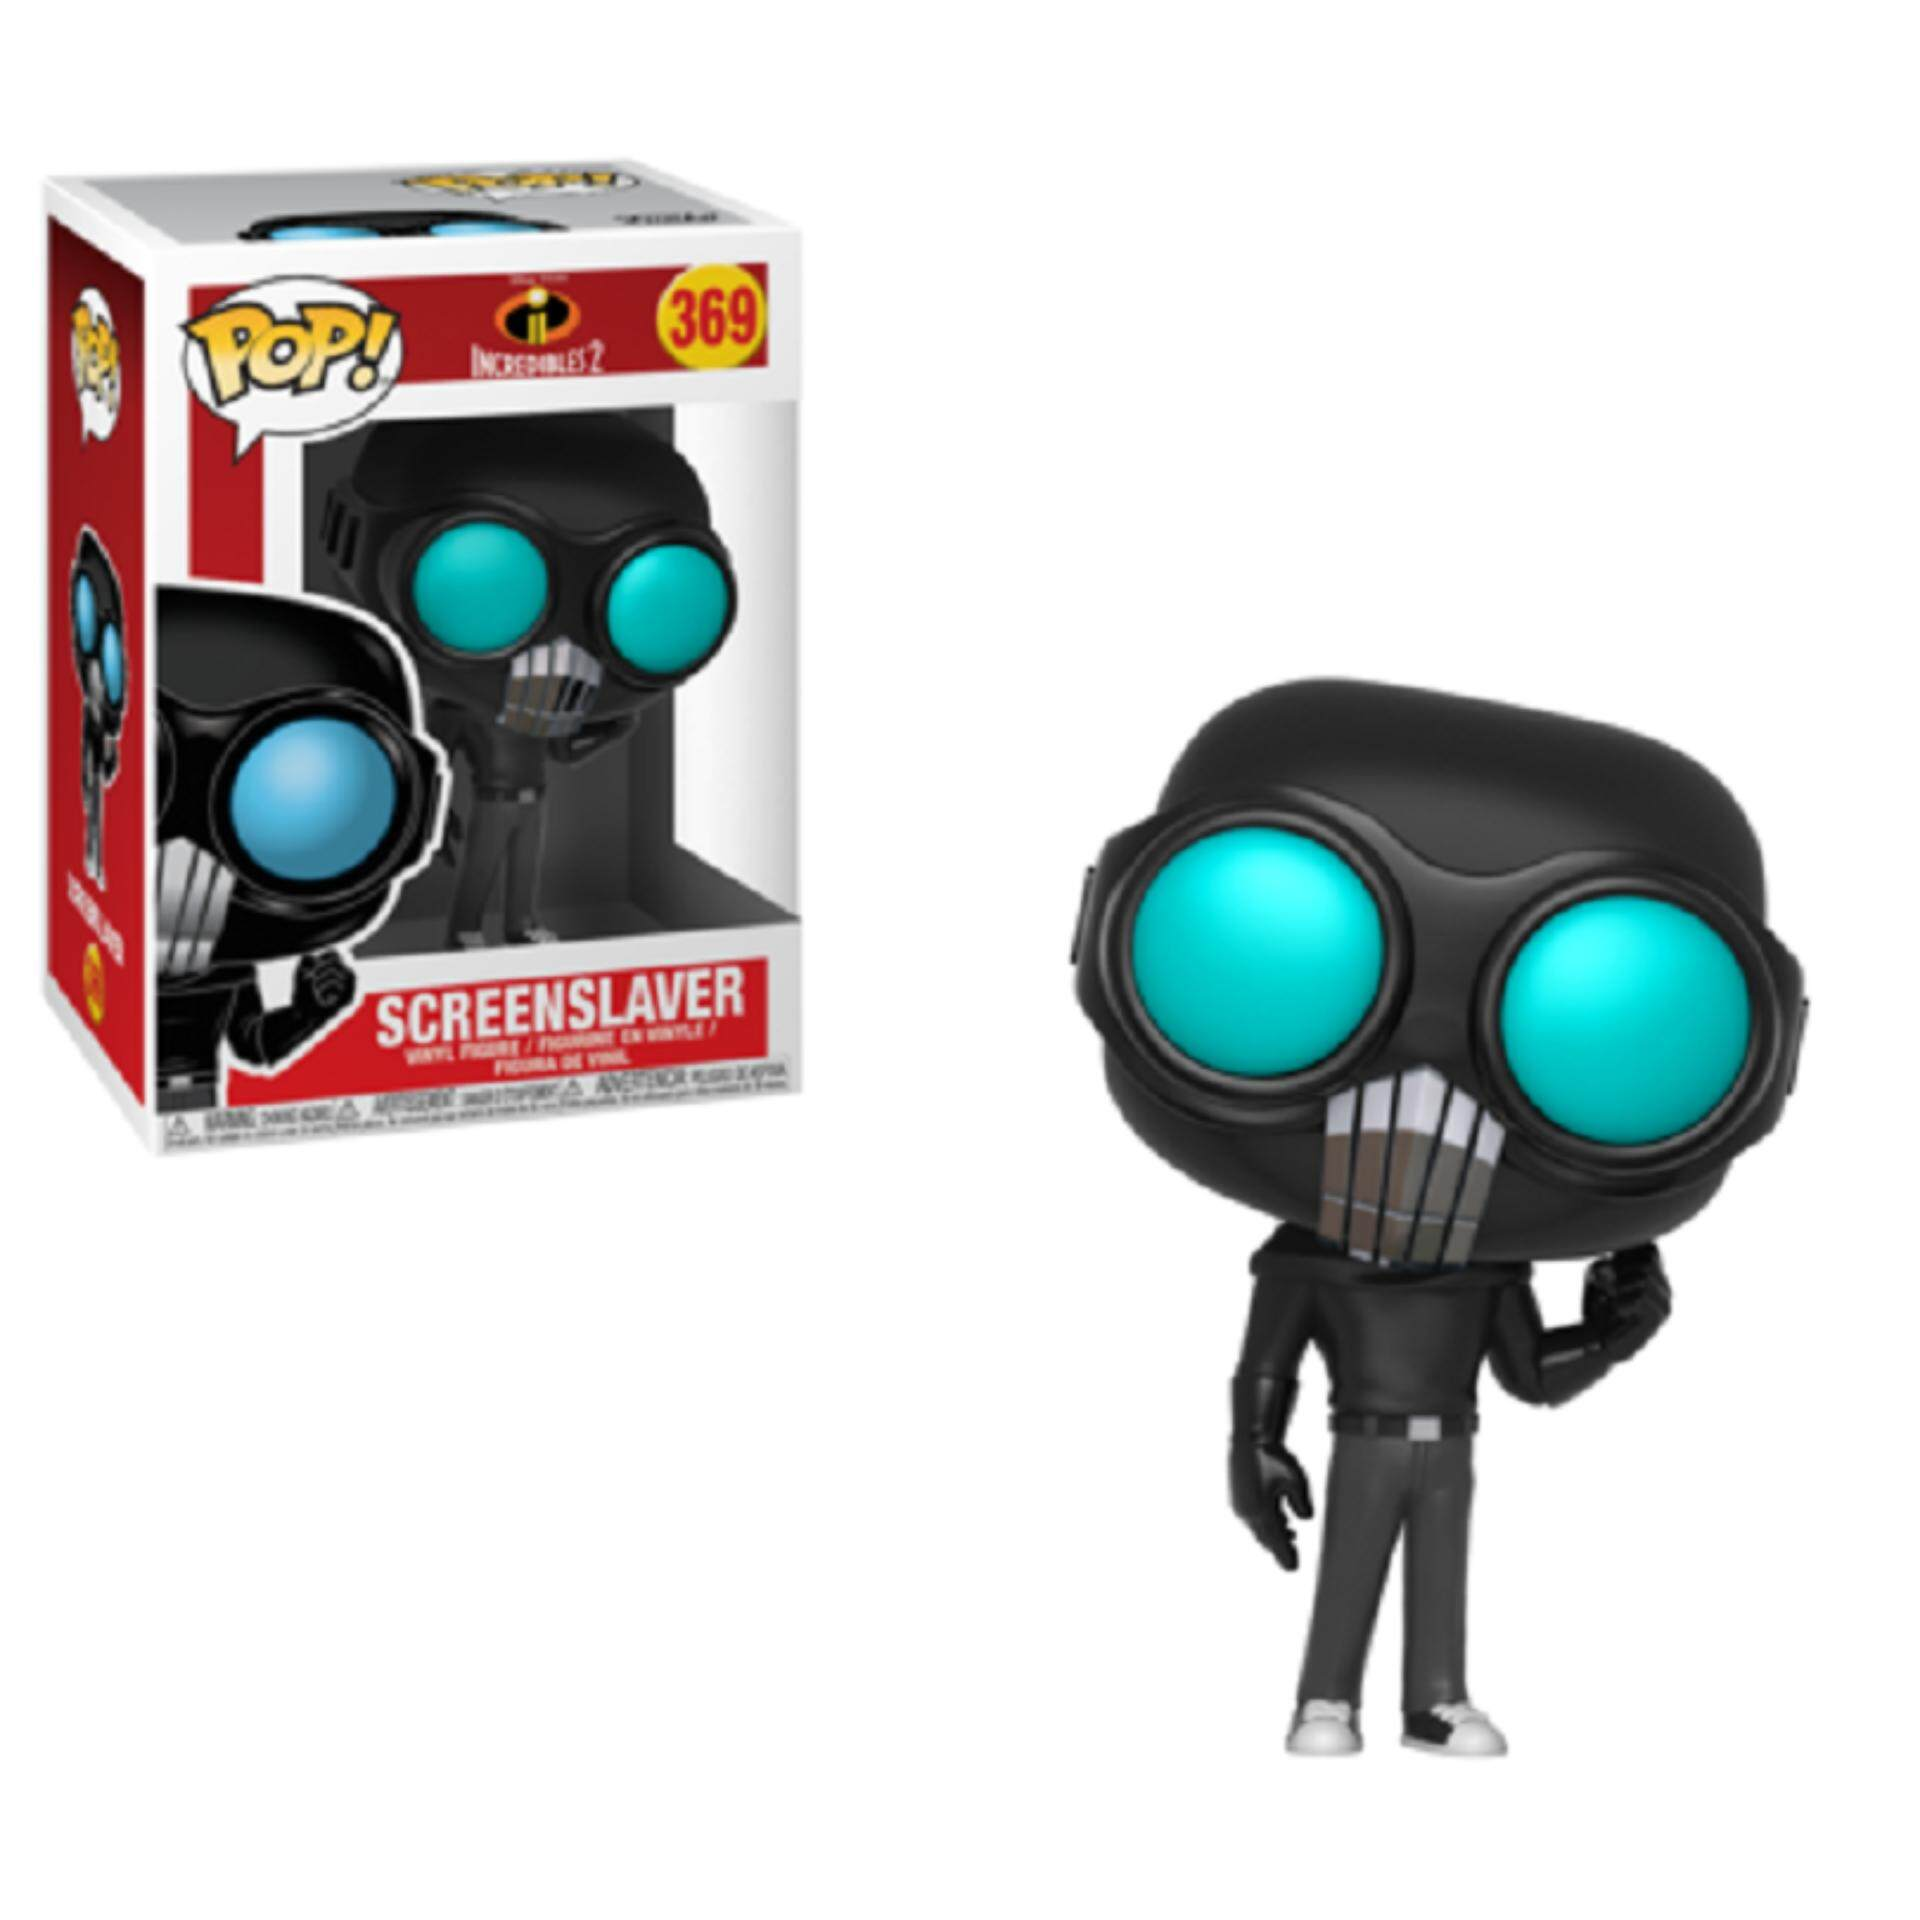 FUNKO POP! Disney Pixar Incredibles 2 Figure - Screenslaver Toys for boys